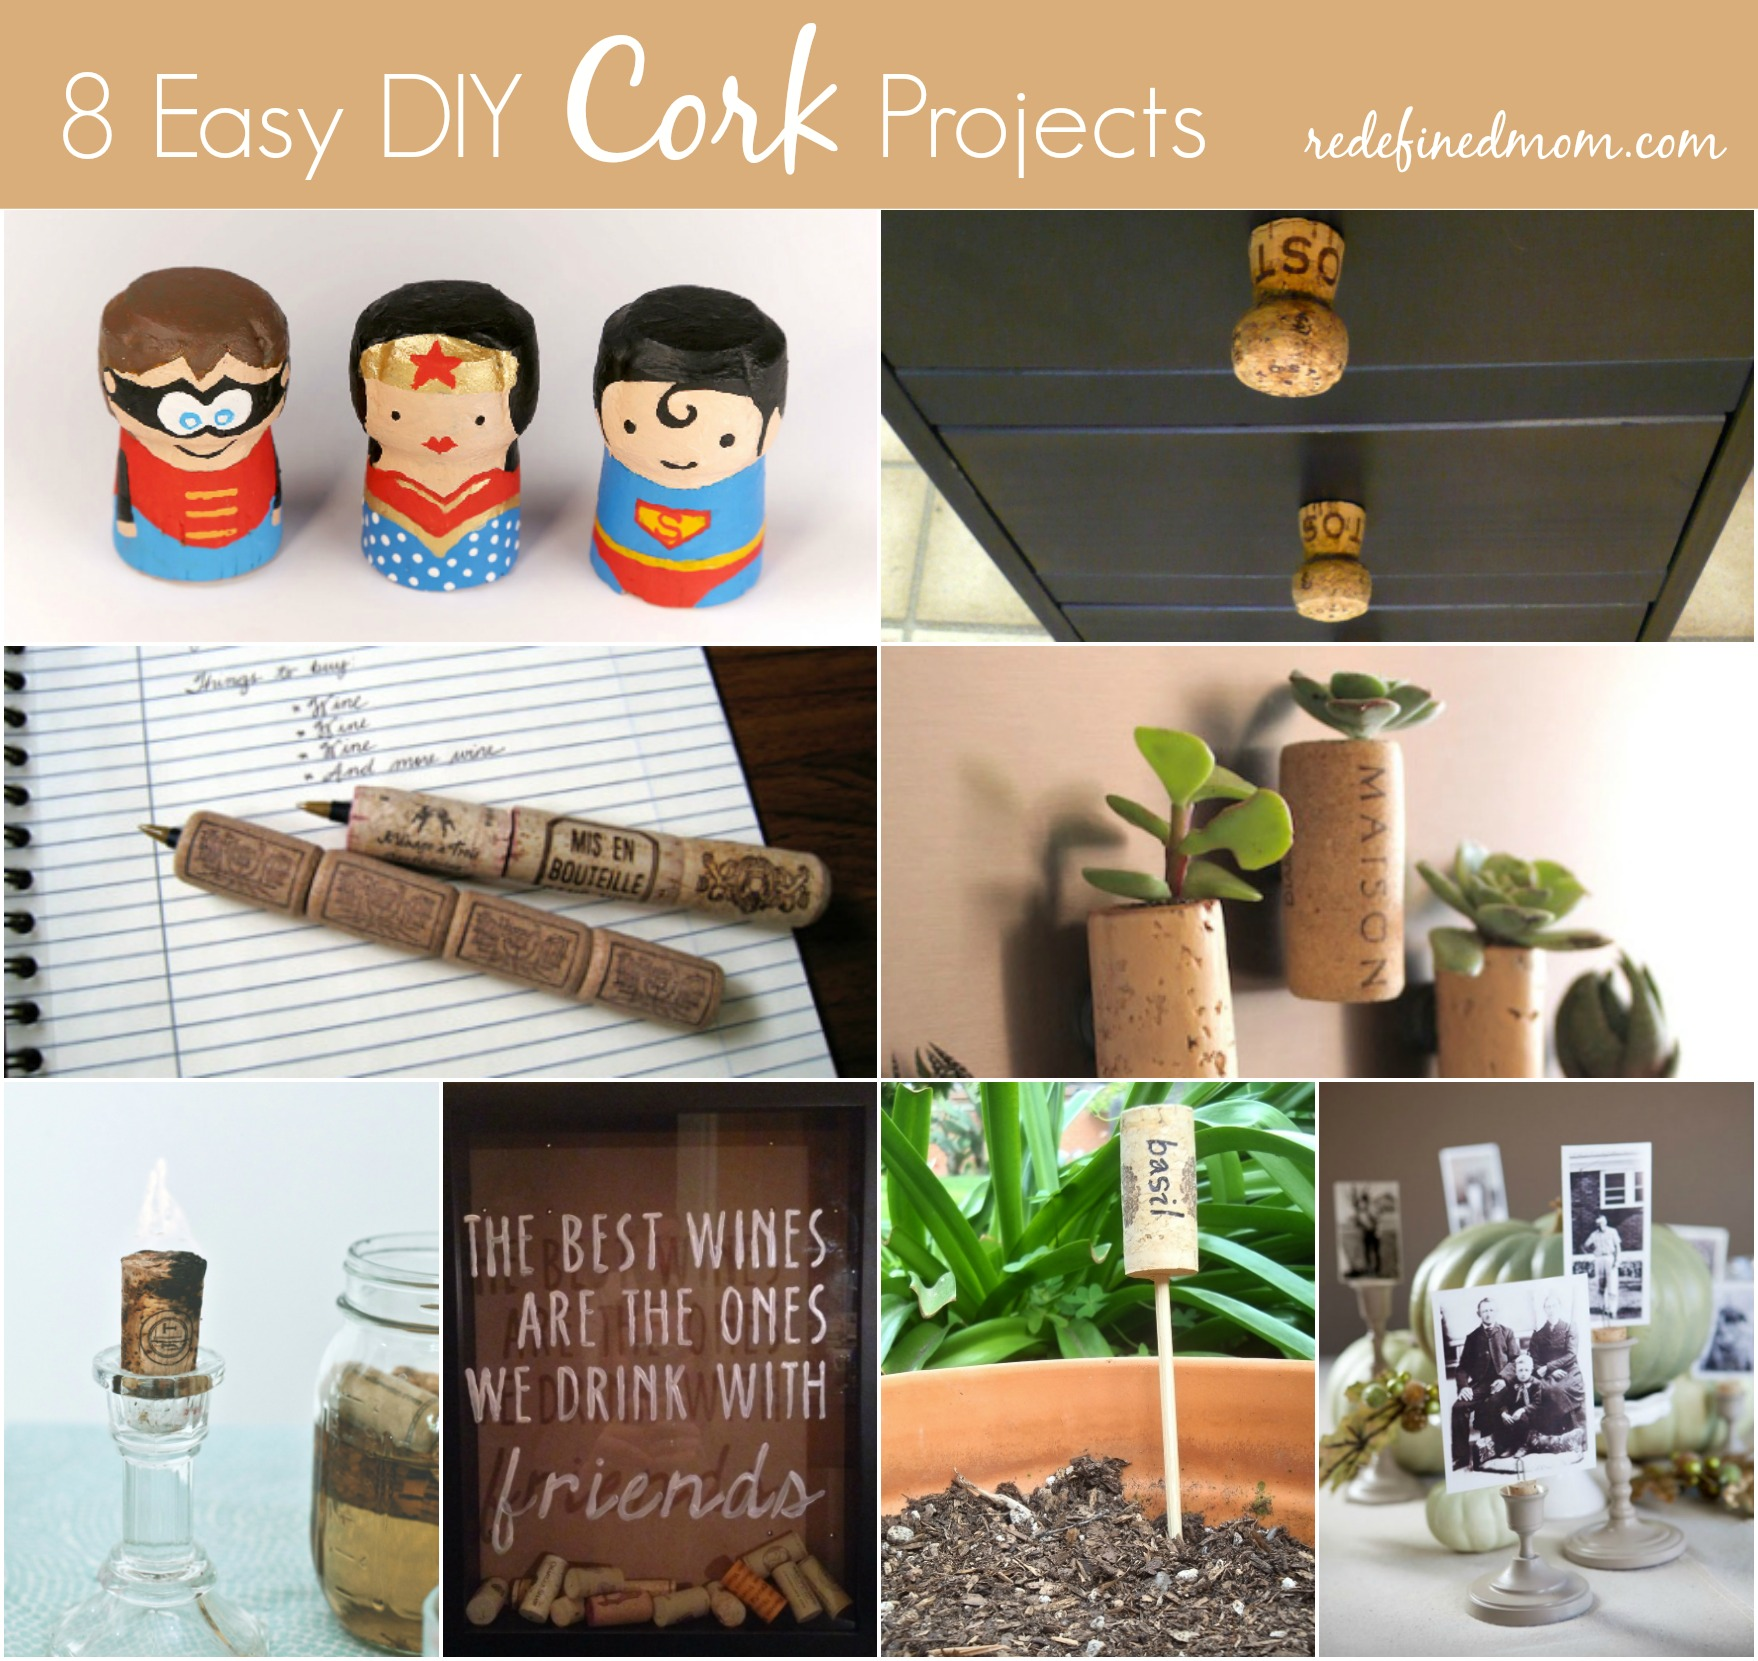 8 Easy DIY Cork Projects